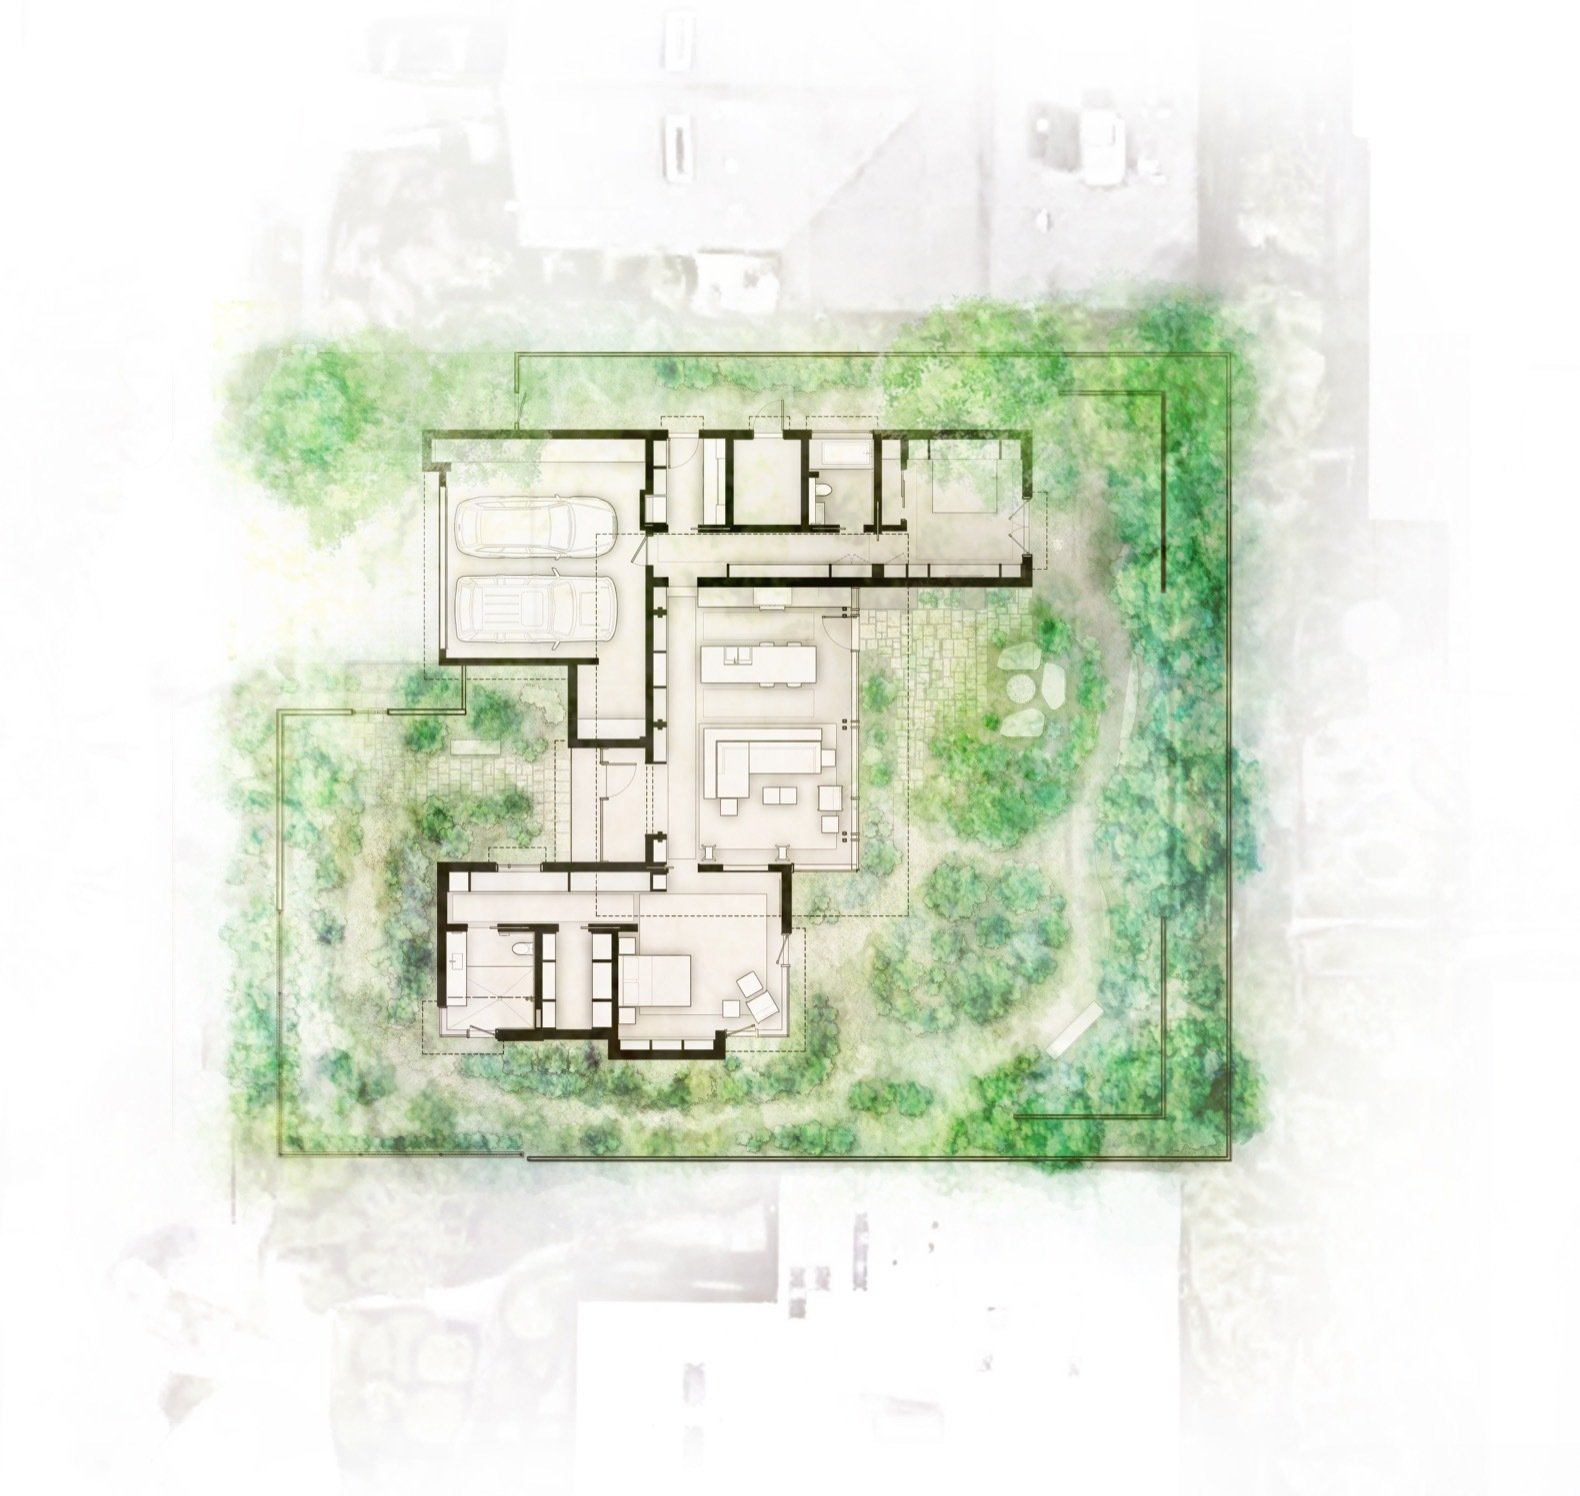 City Cabin floor plan  Photo 13 of 13 in Immersed in Nature, This City Cabin Targets Net-Zero Energy